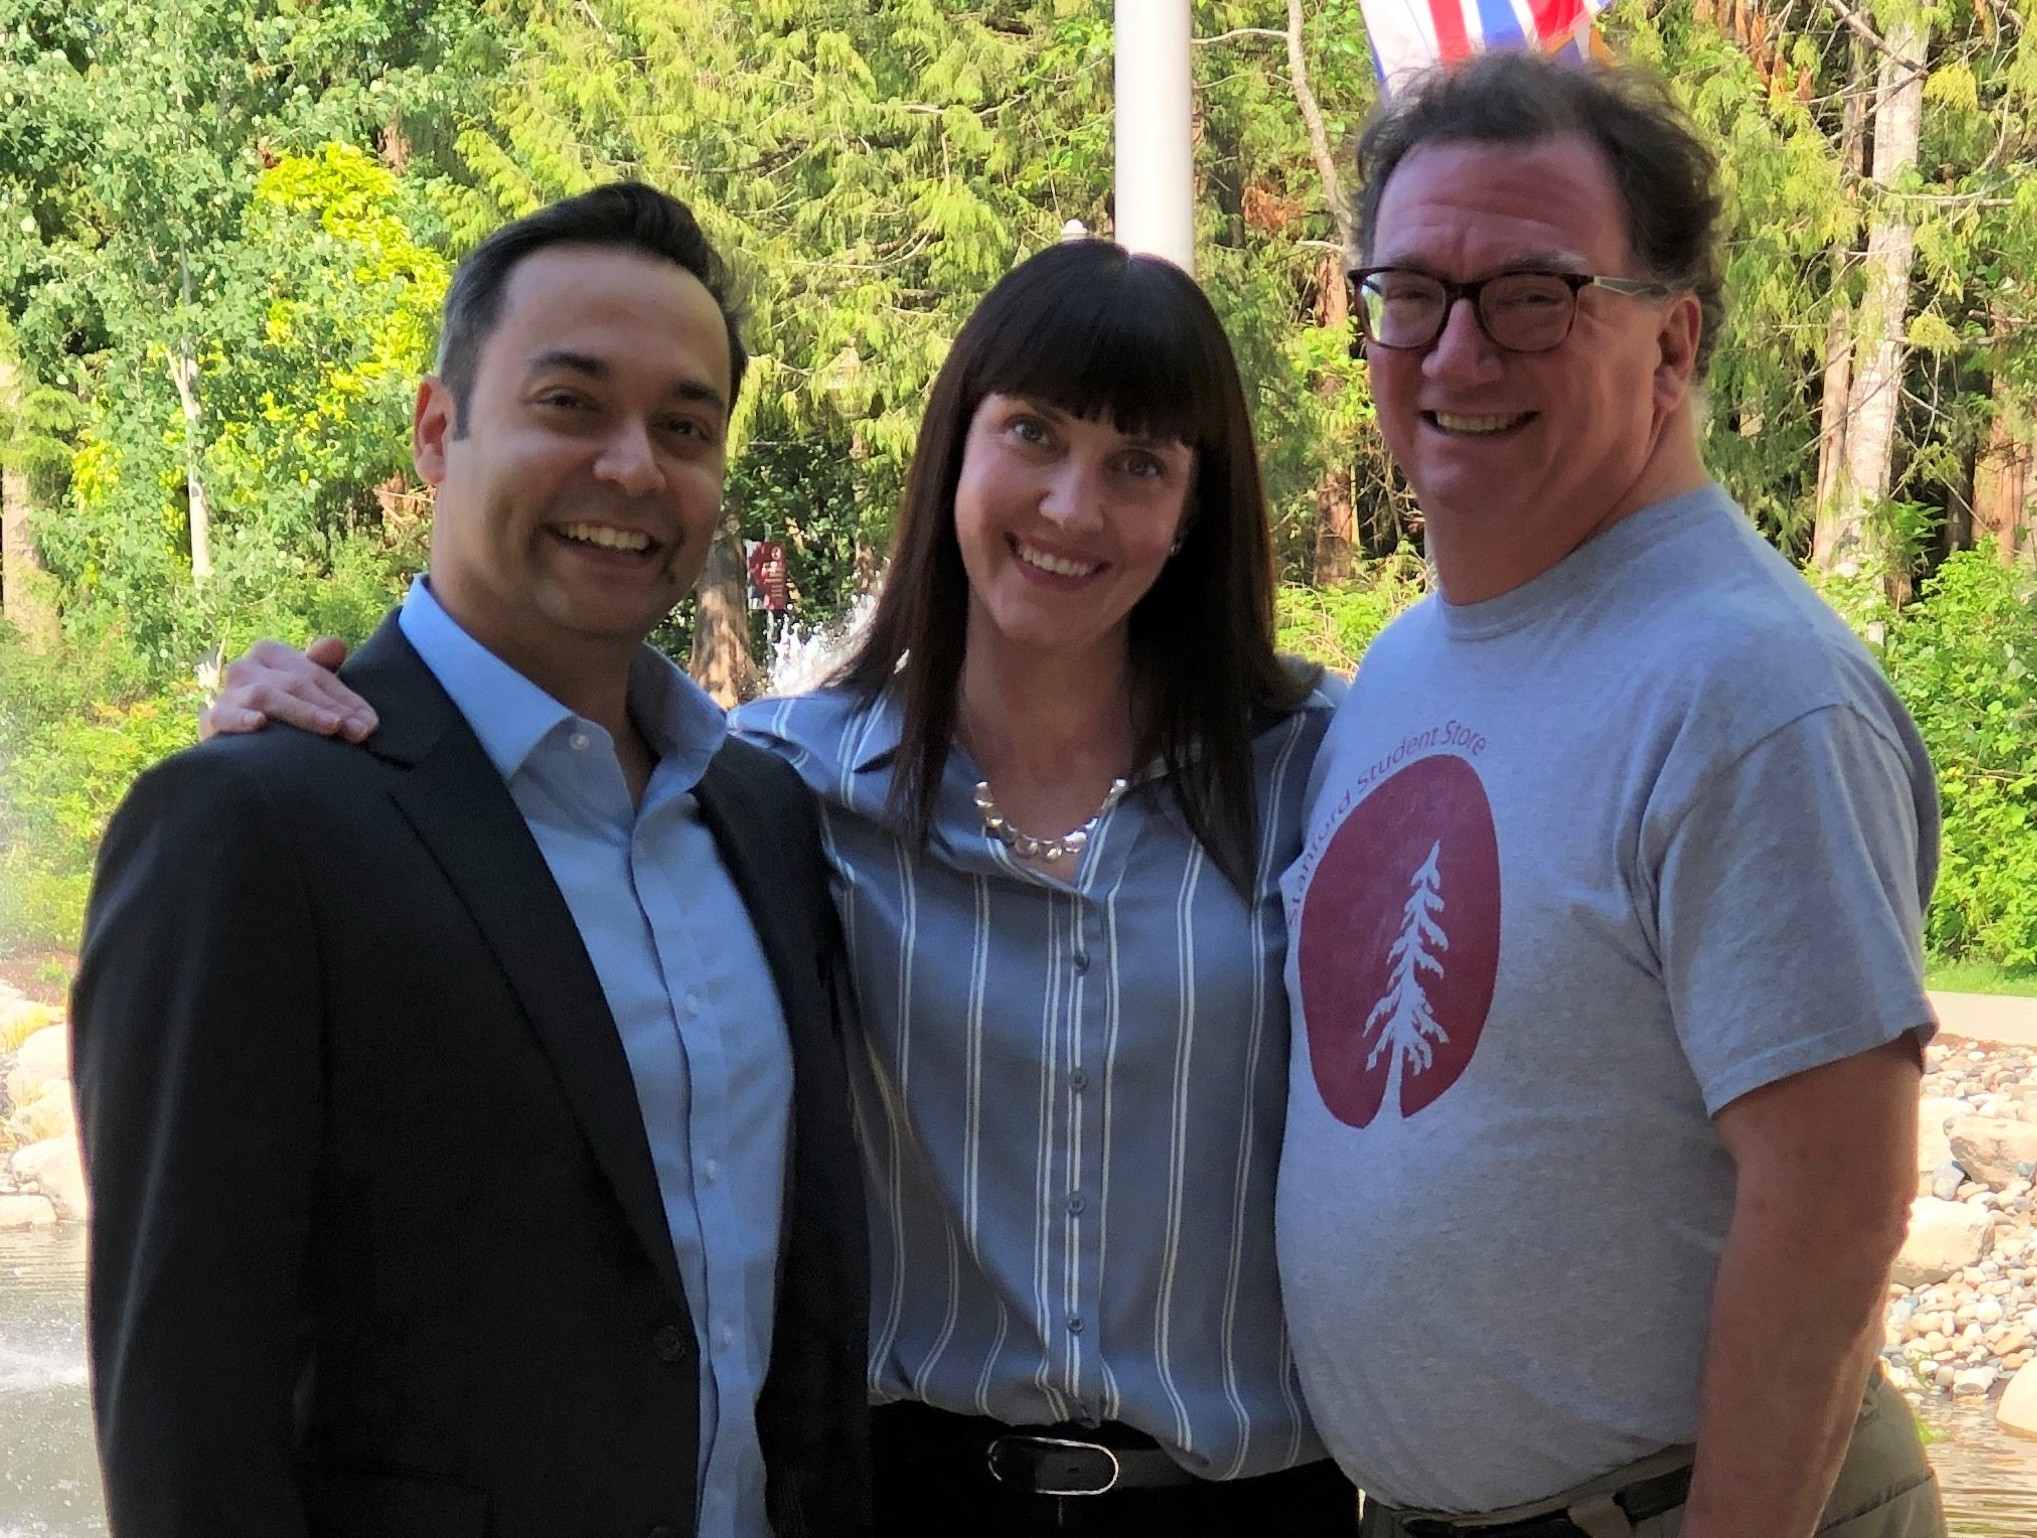 Rajiv Jhangiani, Carrie Cuttler, and Dana Leighton smiling while standing in front of greenery and a partly-obstructed flag pole.